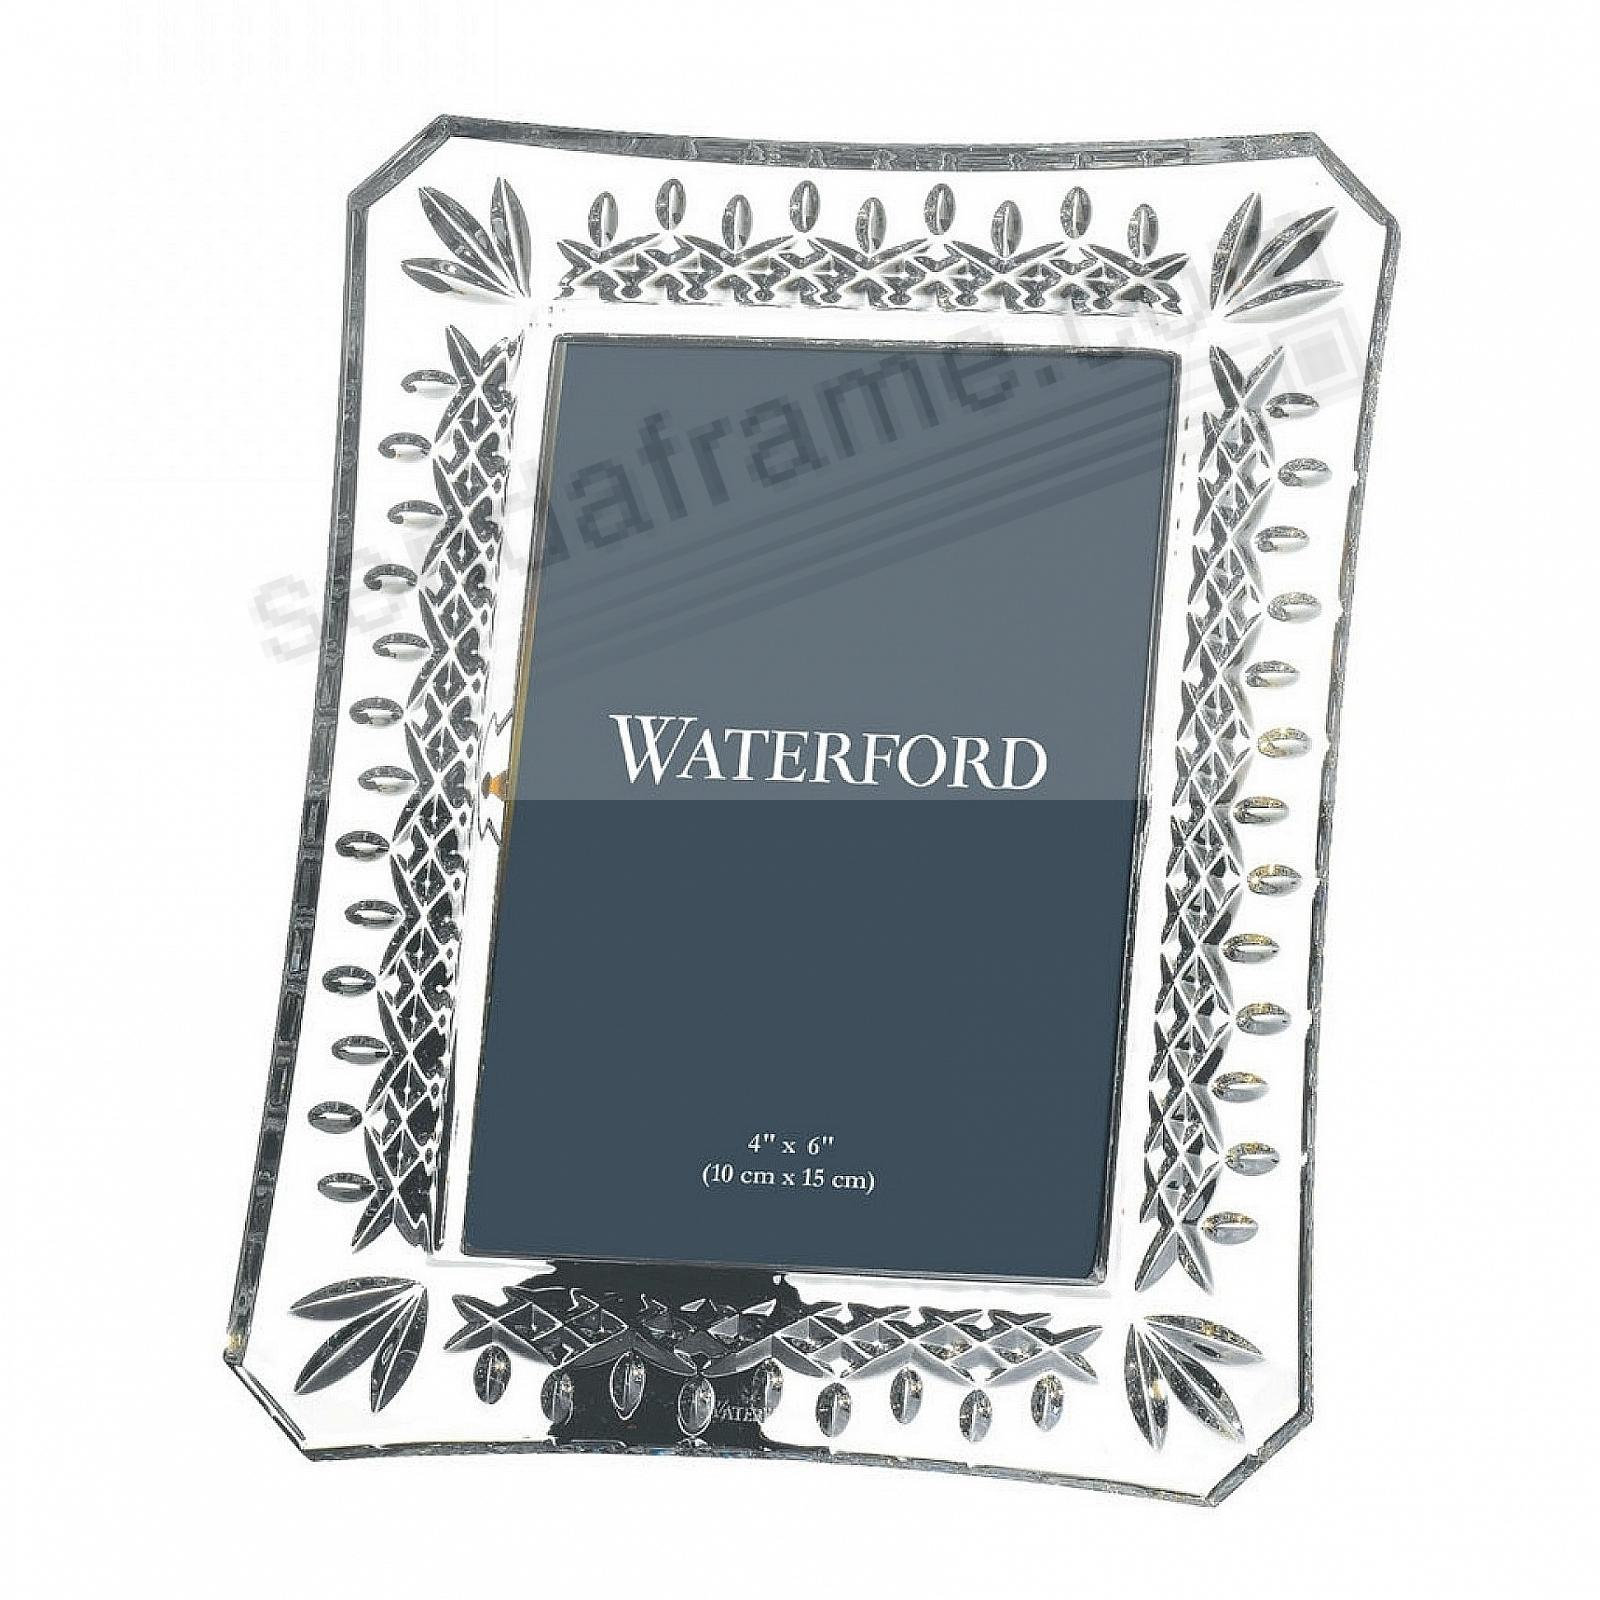 The original LISMORE Irish crystal design by Waterford®